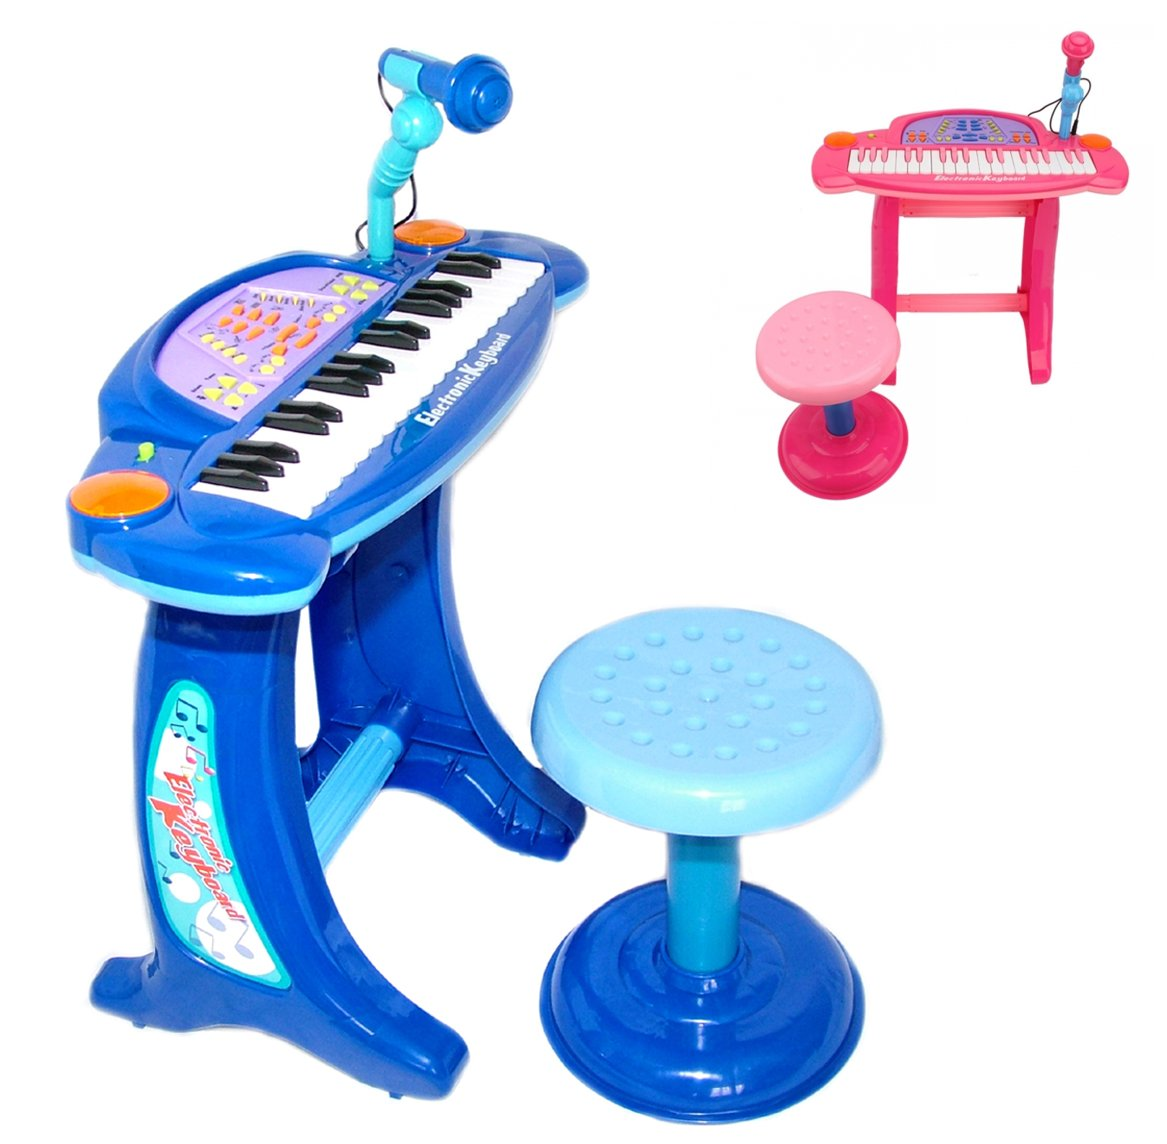 Playtech Logic Childrens Recording Karaoke Electronic Keyboard Piano - Electric Keyboard with Lights for Boys Girls - Mega Music Station - 36 Keys - 32 ...  sc 1 st  Amazon UK & Playtech Logic Childrens Recording Karaoke Electronic Keyboard ... islam-shia.org